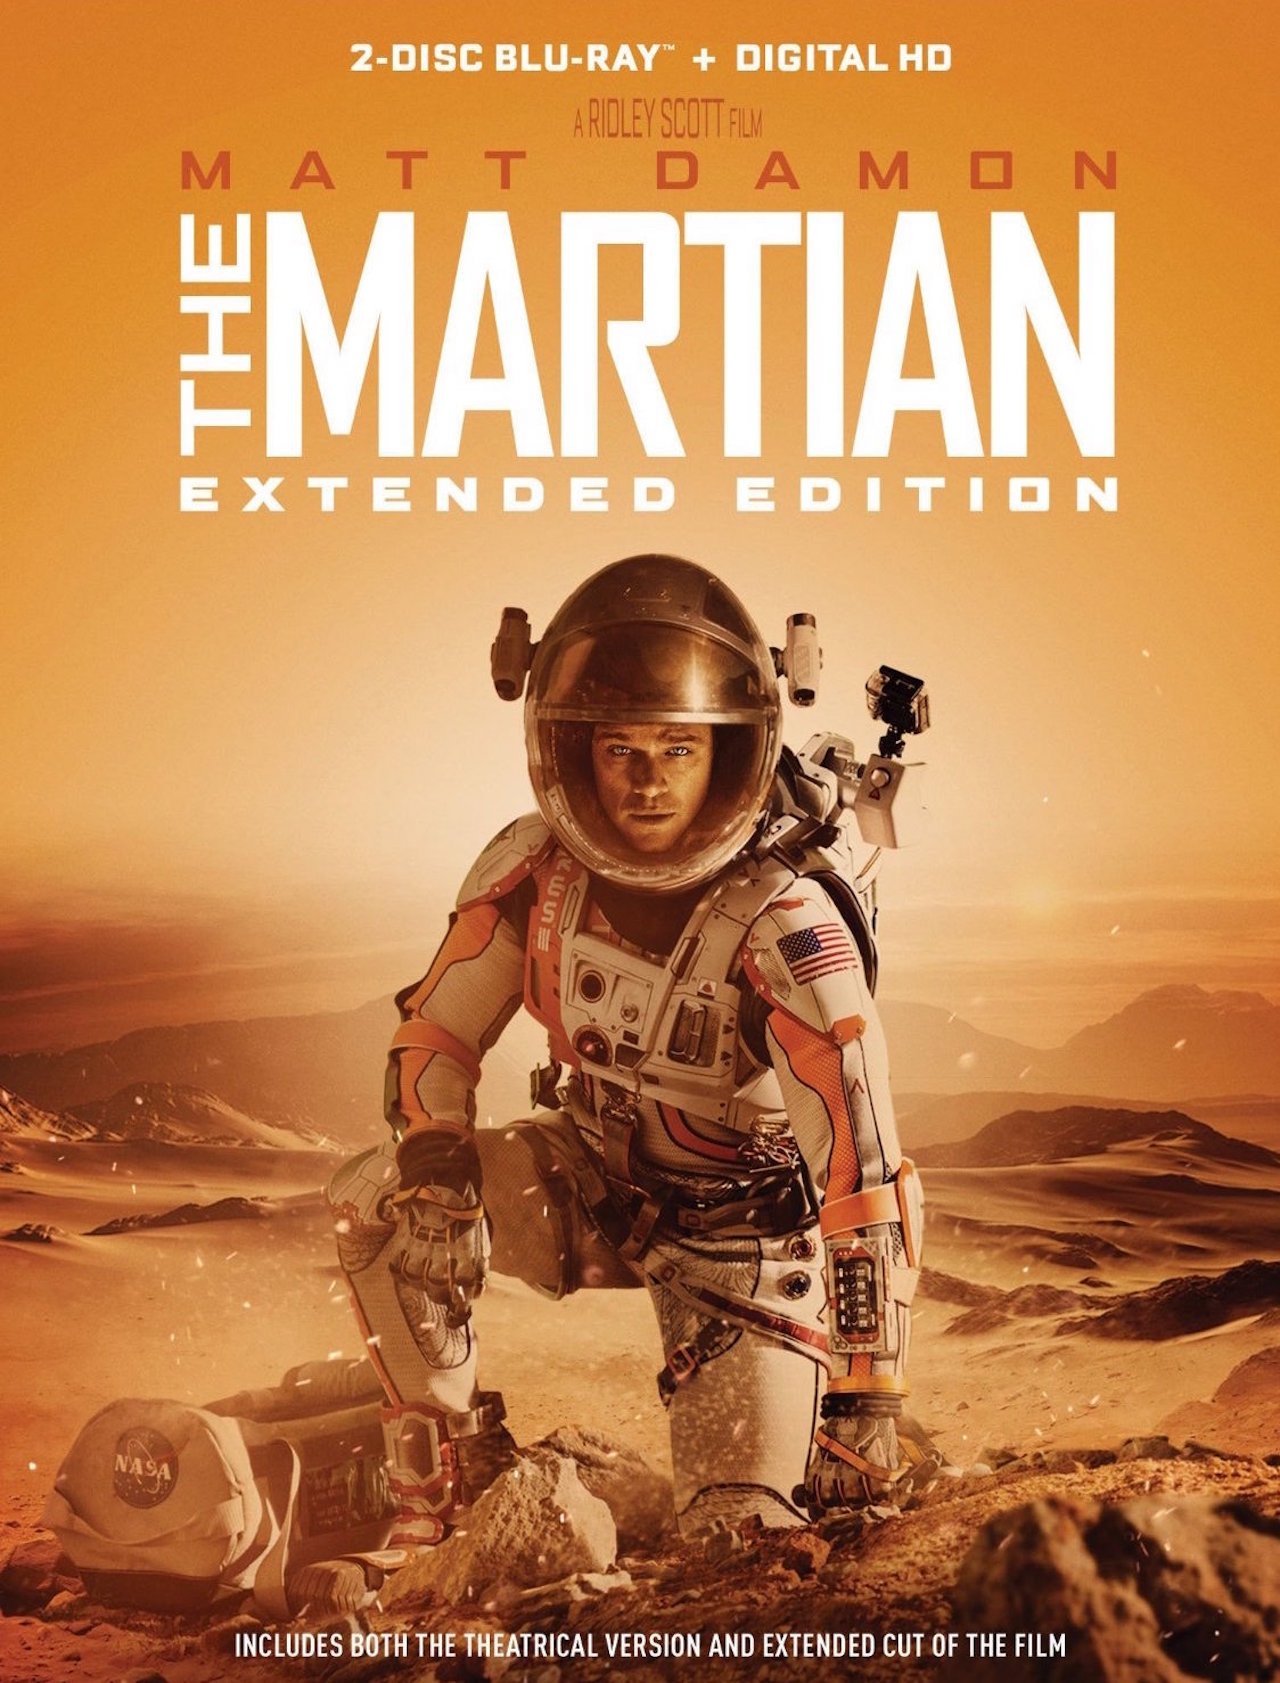 The Martian - Extended Edition